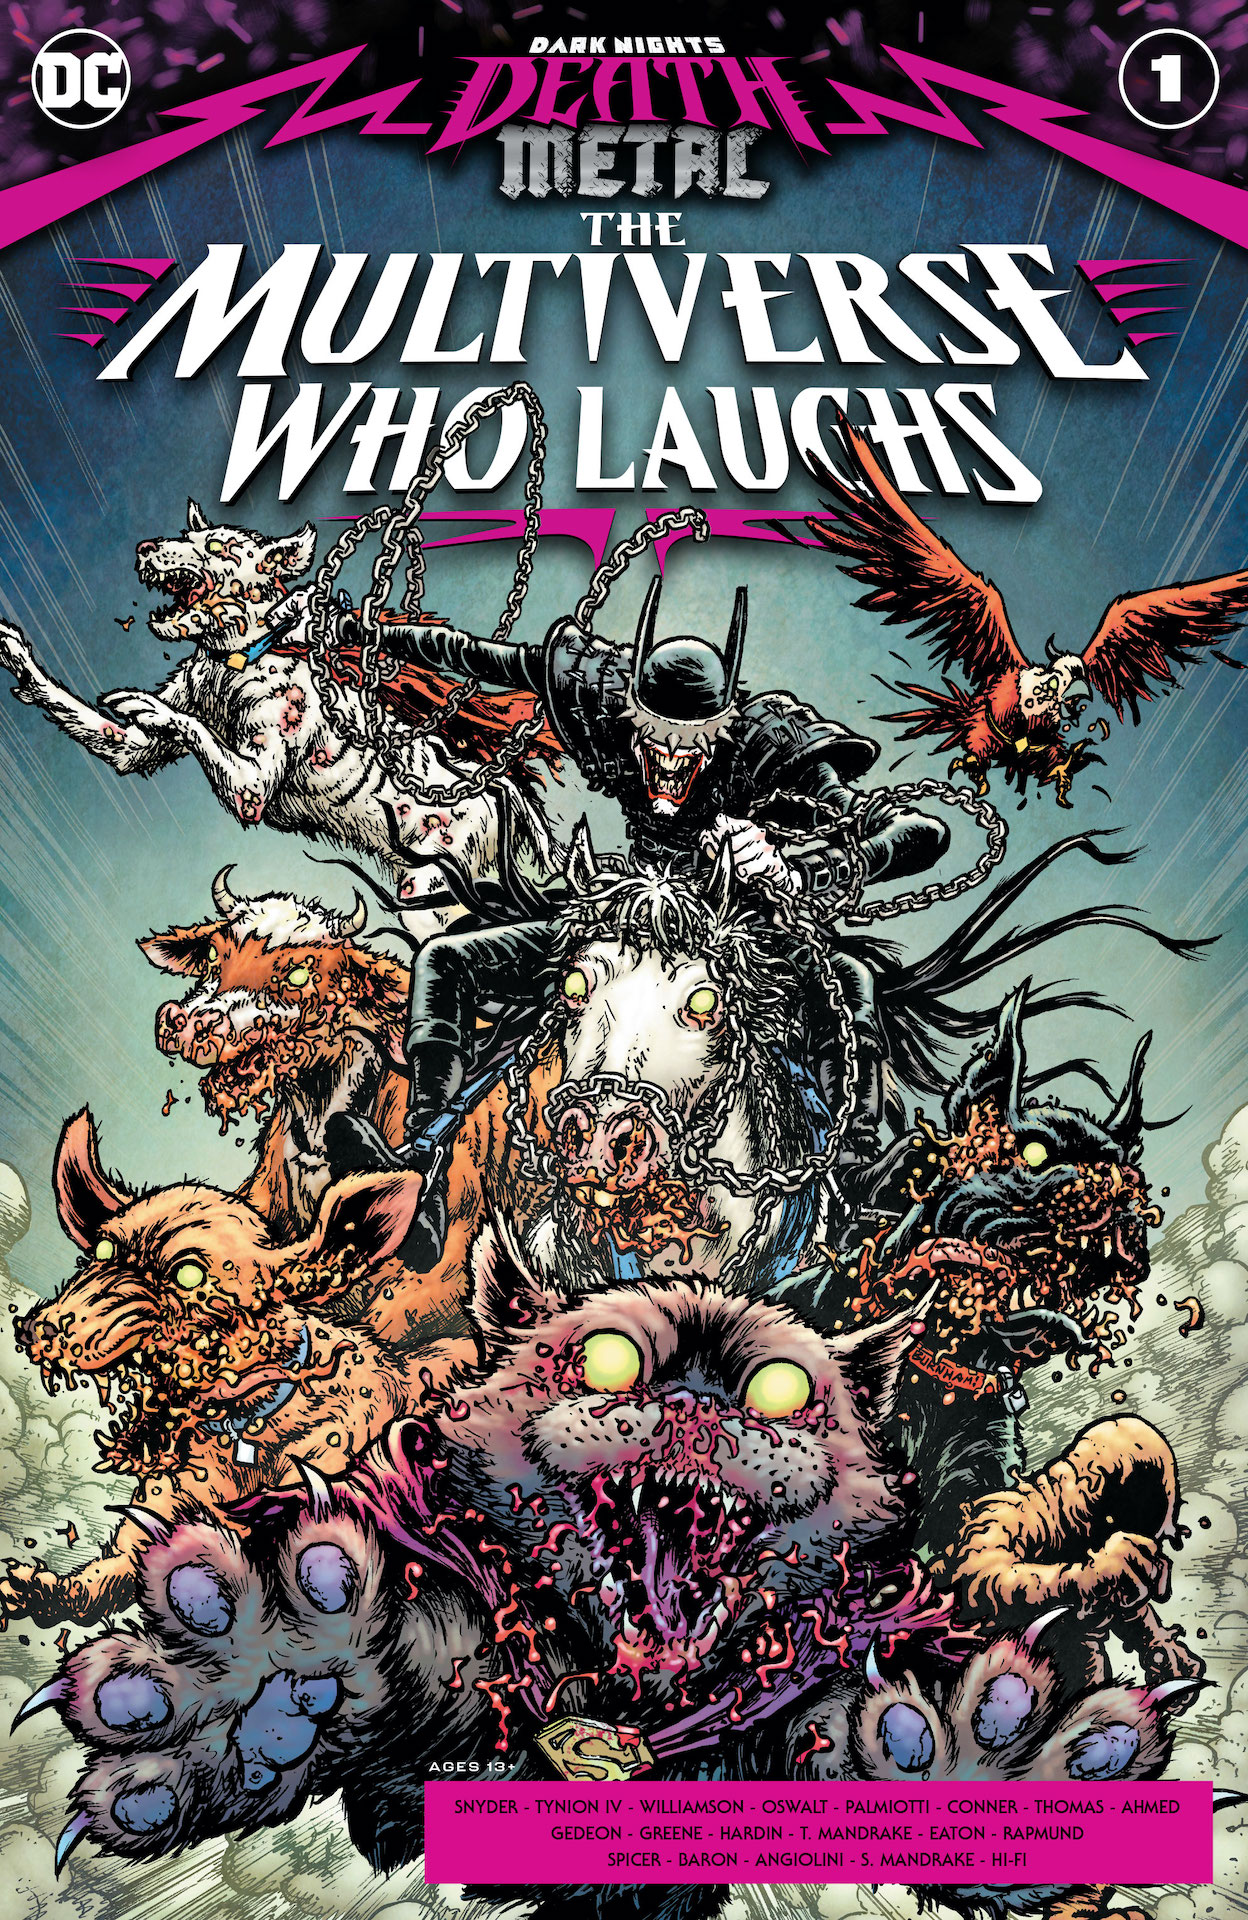 Dark Nights: Death Metal – The Multiverse Who Laughs #1 preview